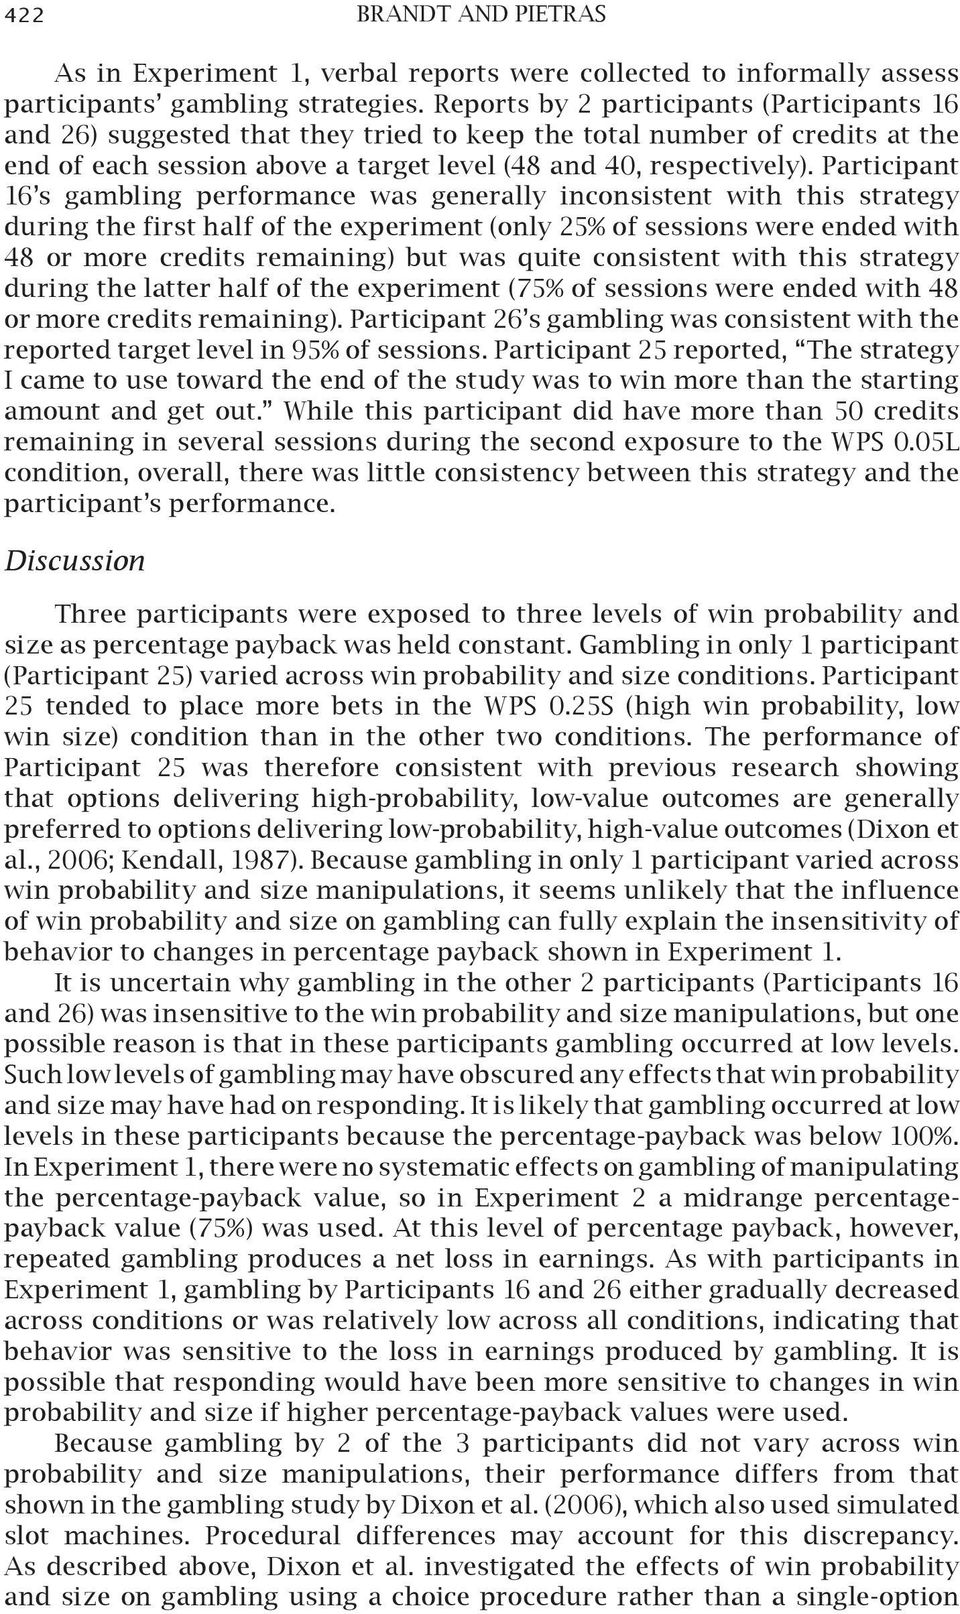 Participant 16 s gambling performance was generally inconsistent with this strategy during the first half of the experiment (only 25% of sessions were ended with 48 or more credits remaining) but was